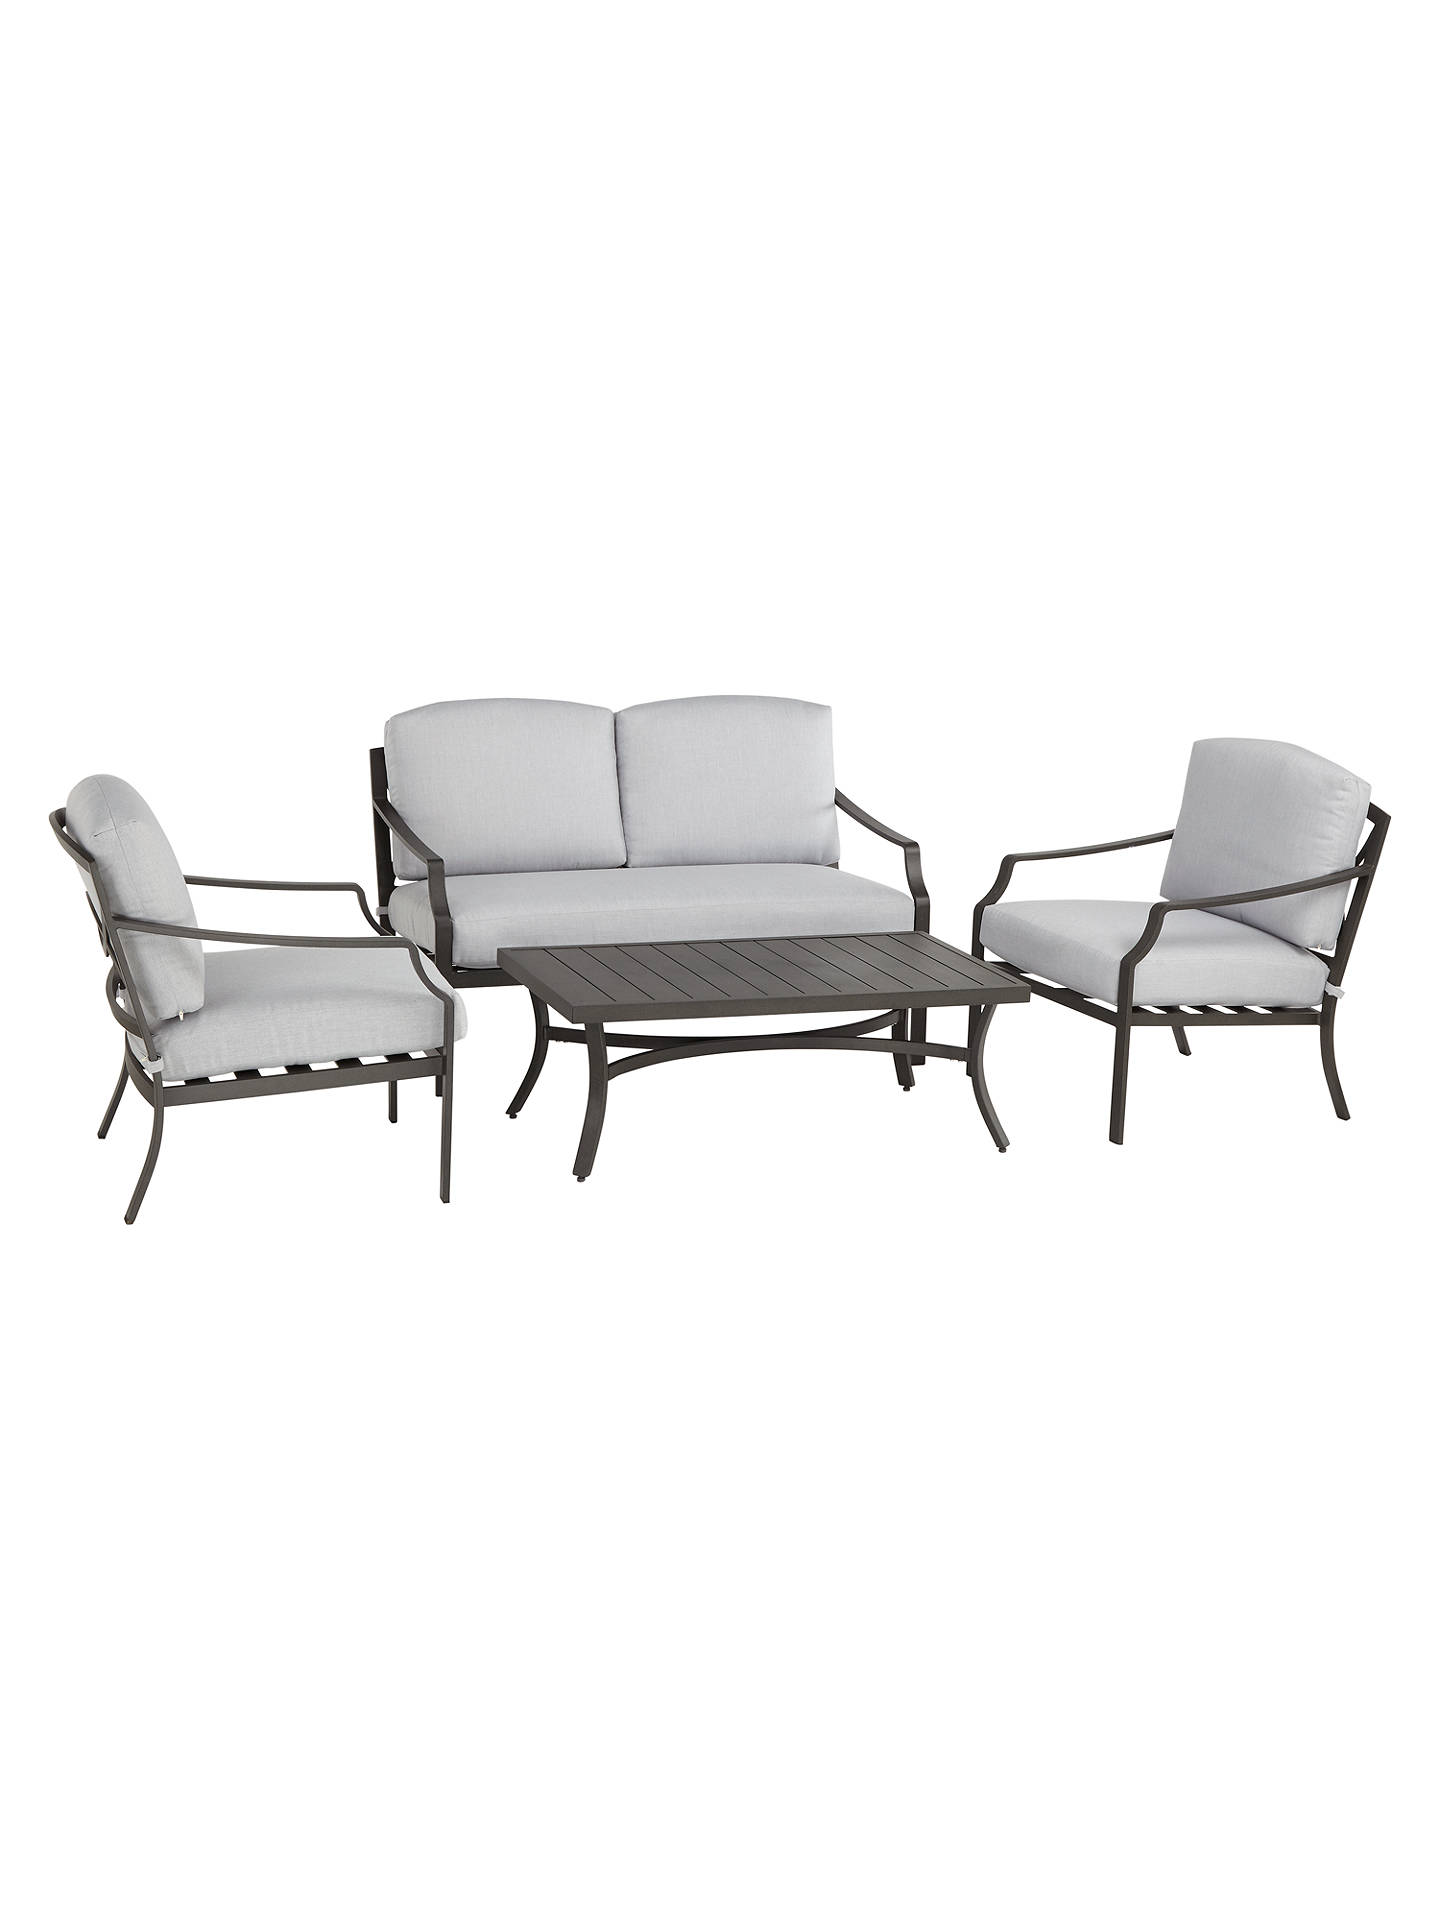 Buy John Lewis & Partners Marlow Aluminium 4 Seater Garden Lounge Set, Black/Grey Online at johnlewis.com